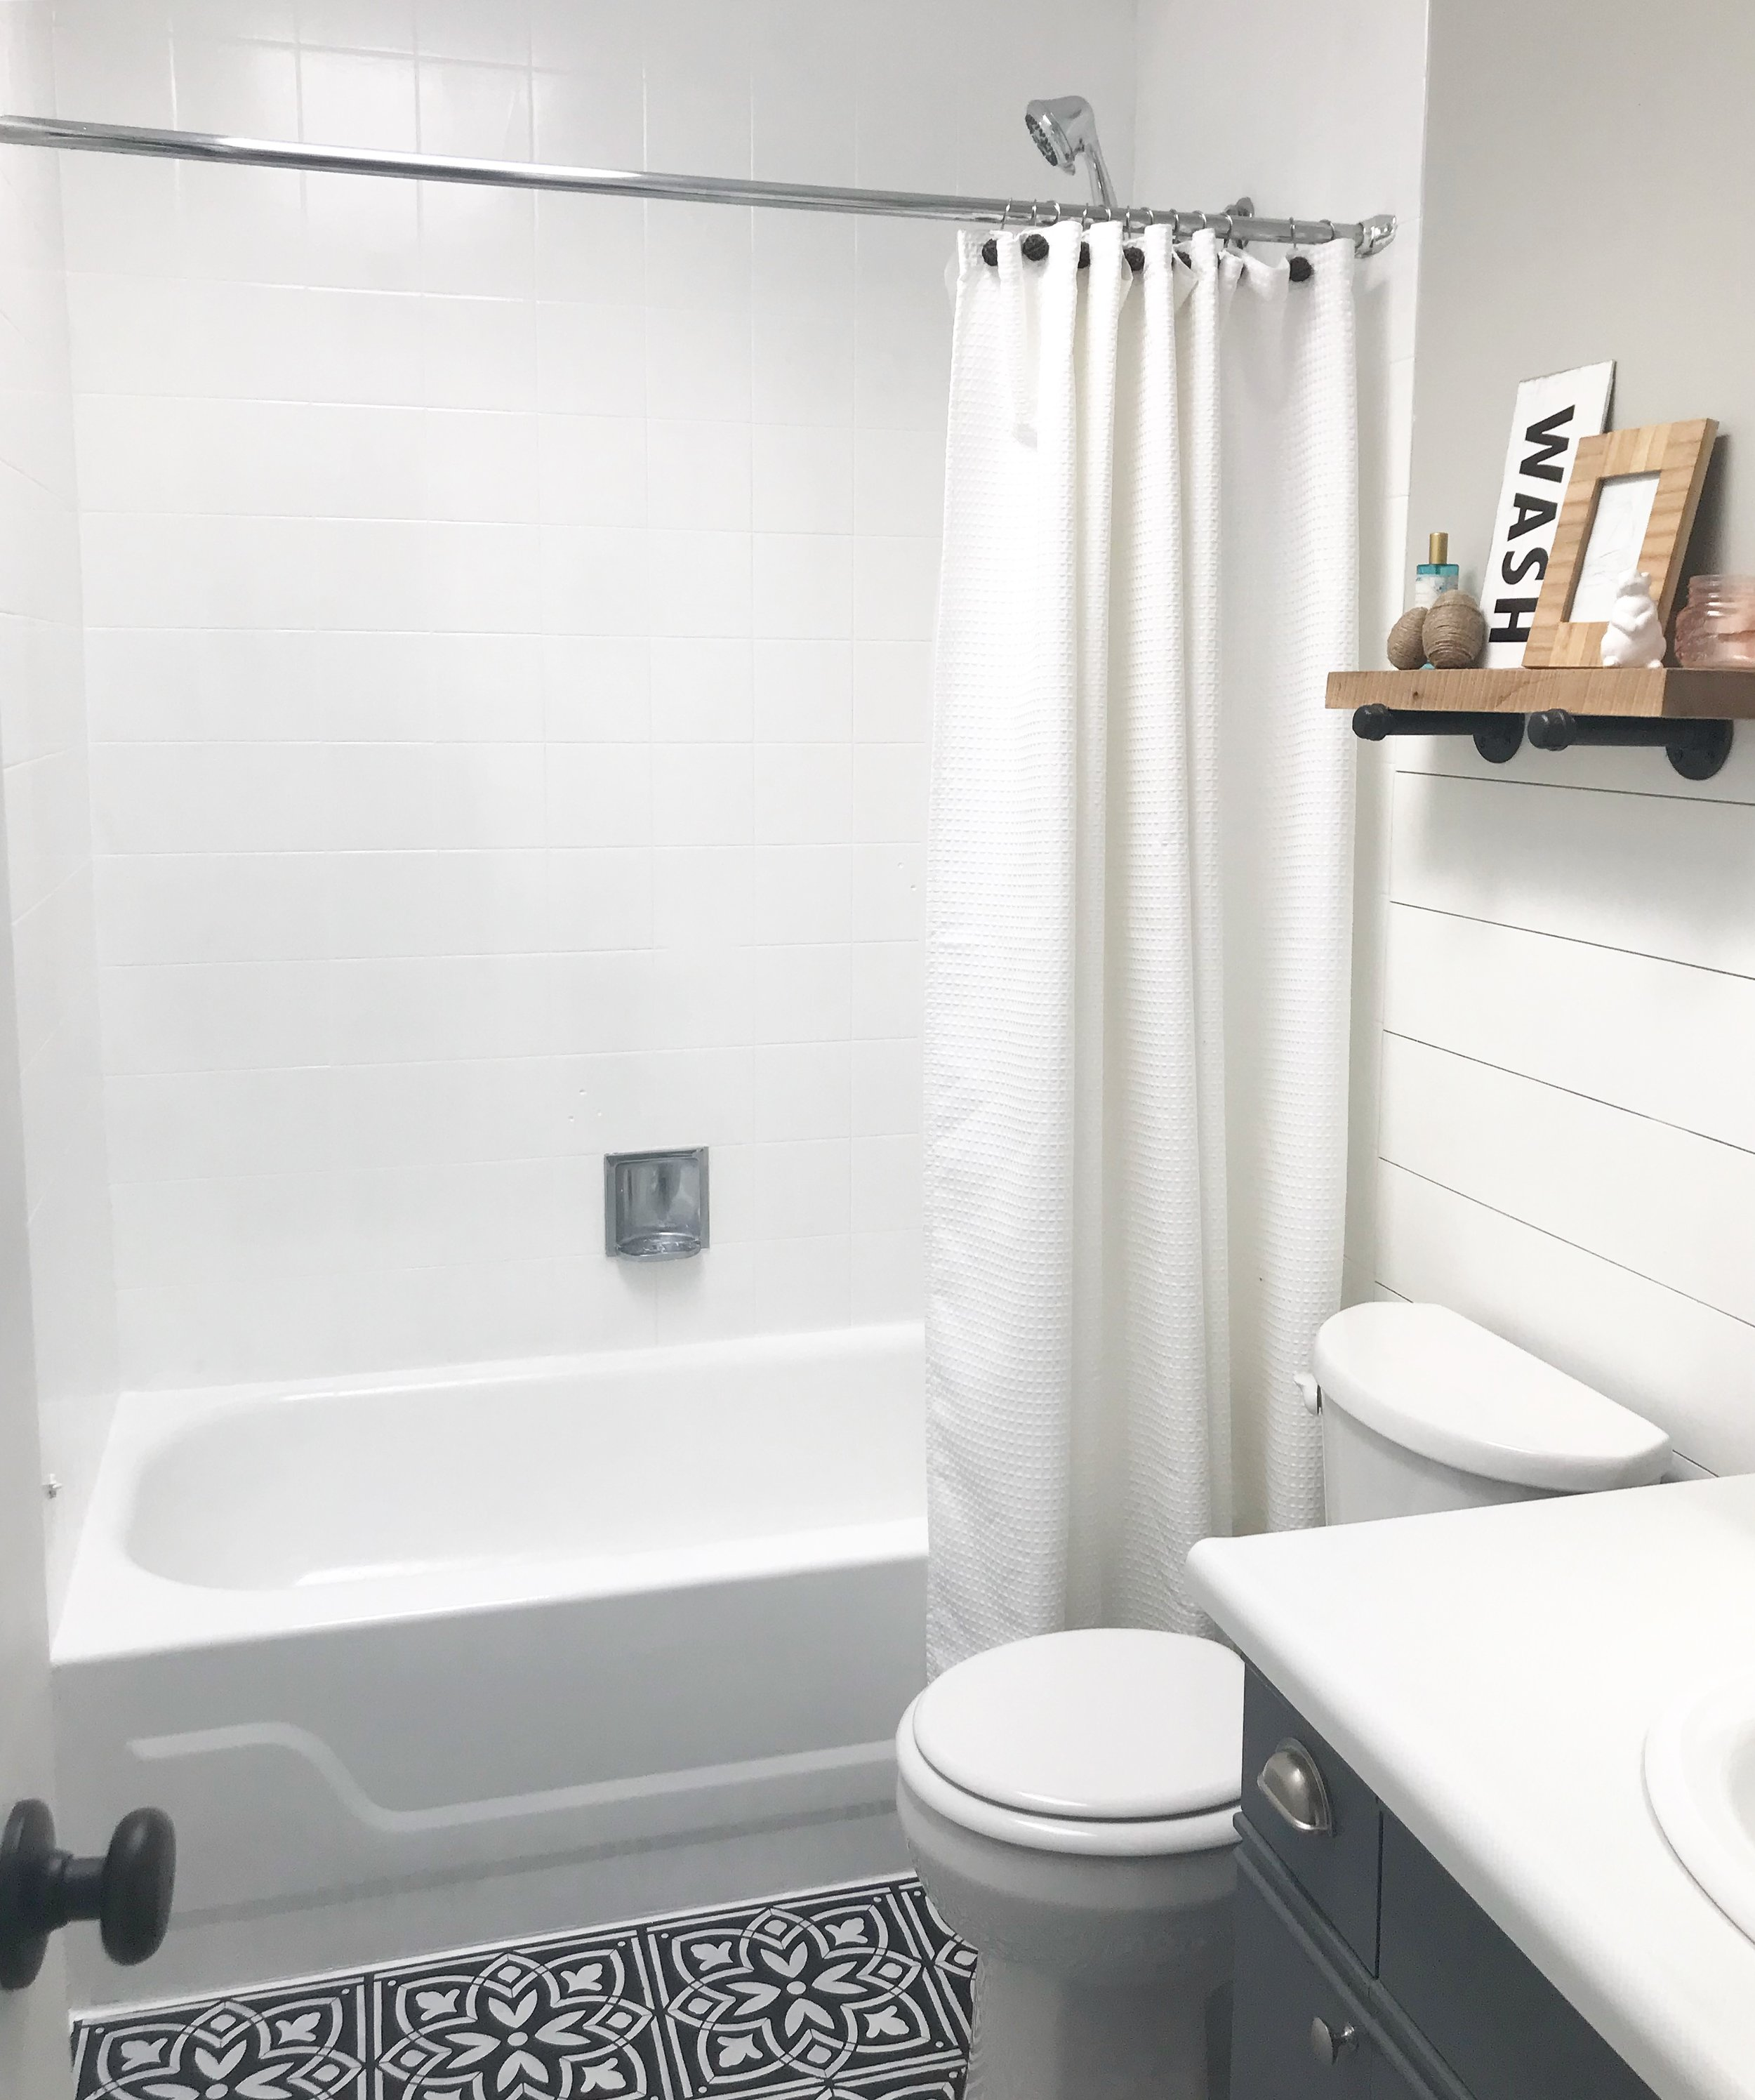 After- the finished product :) :) :) plus a new shower head !